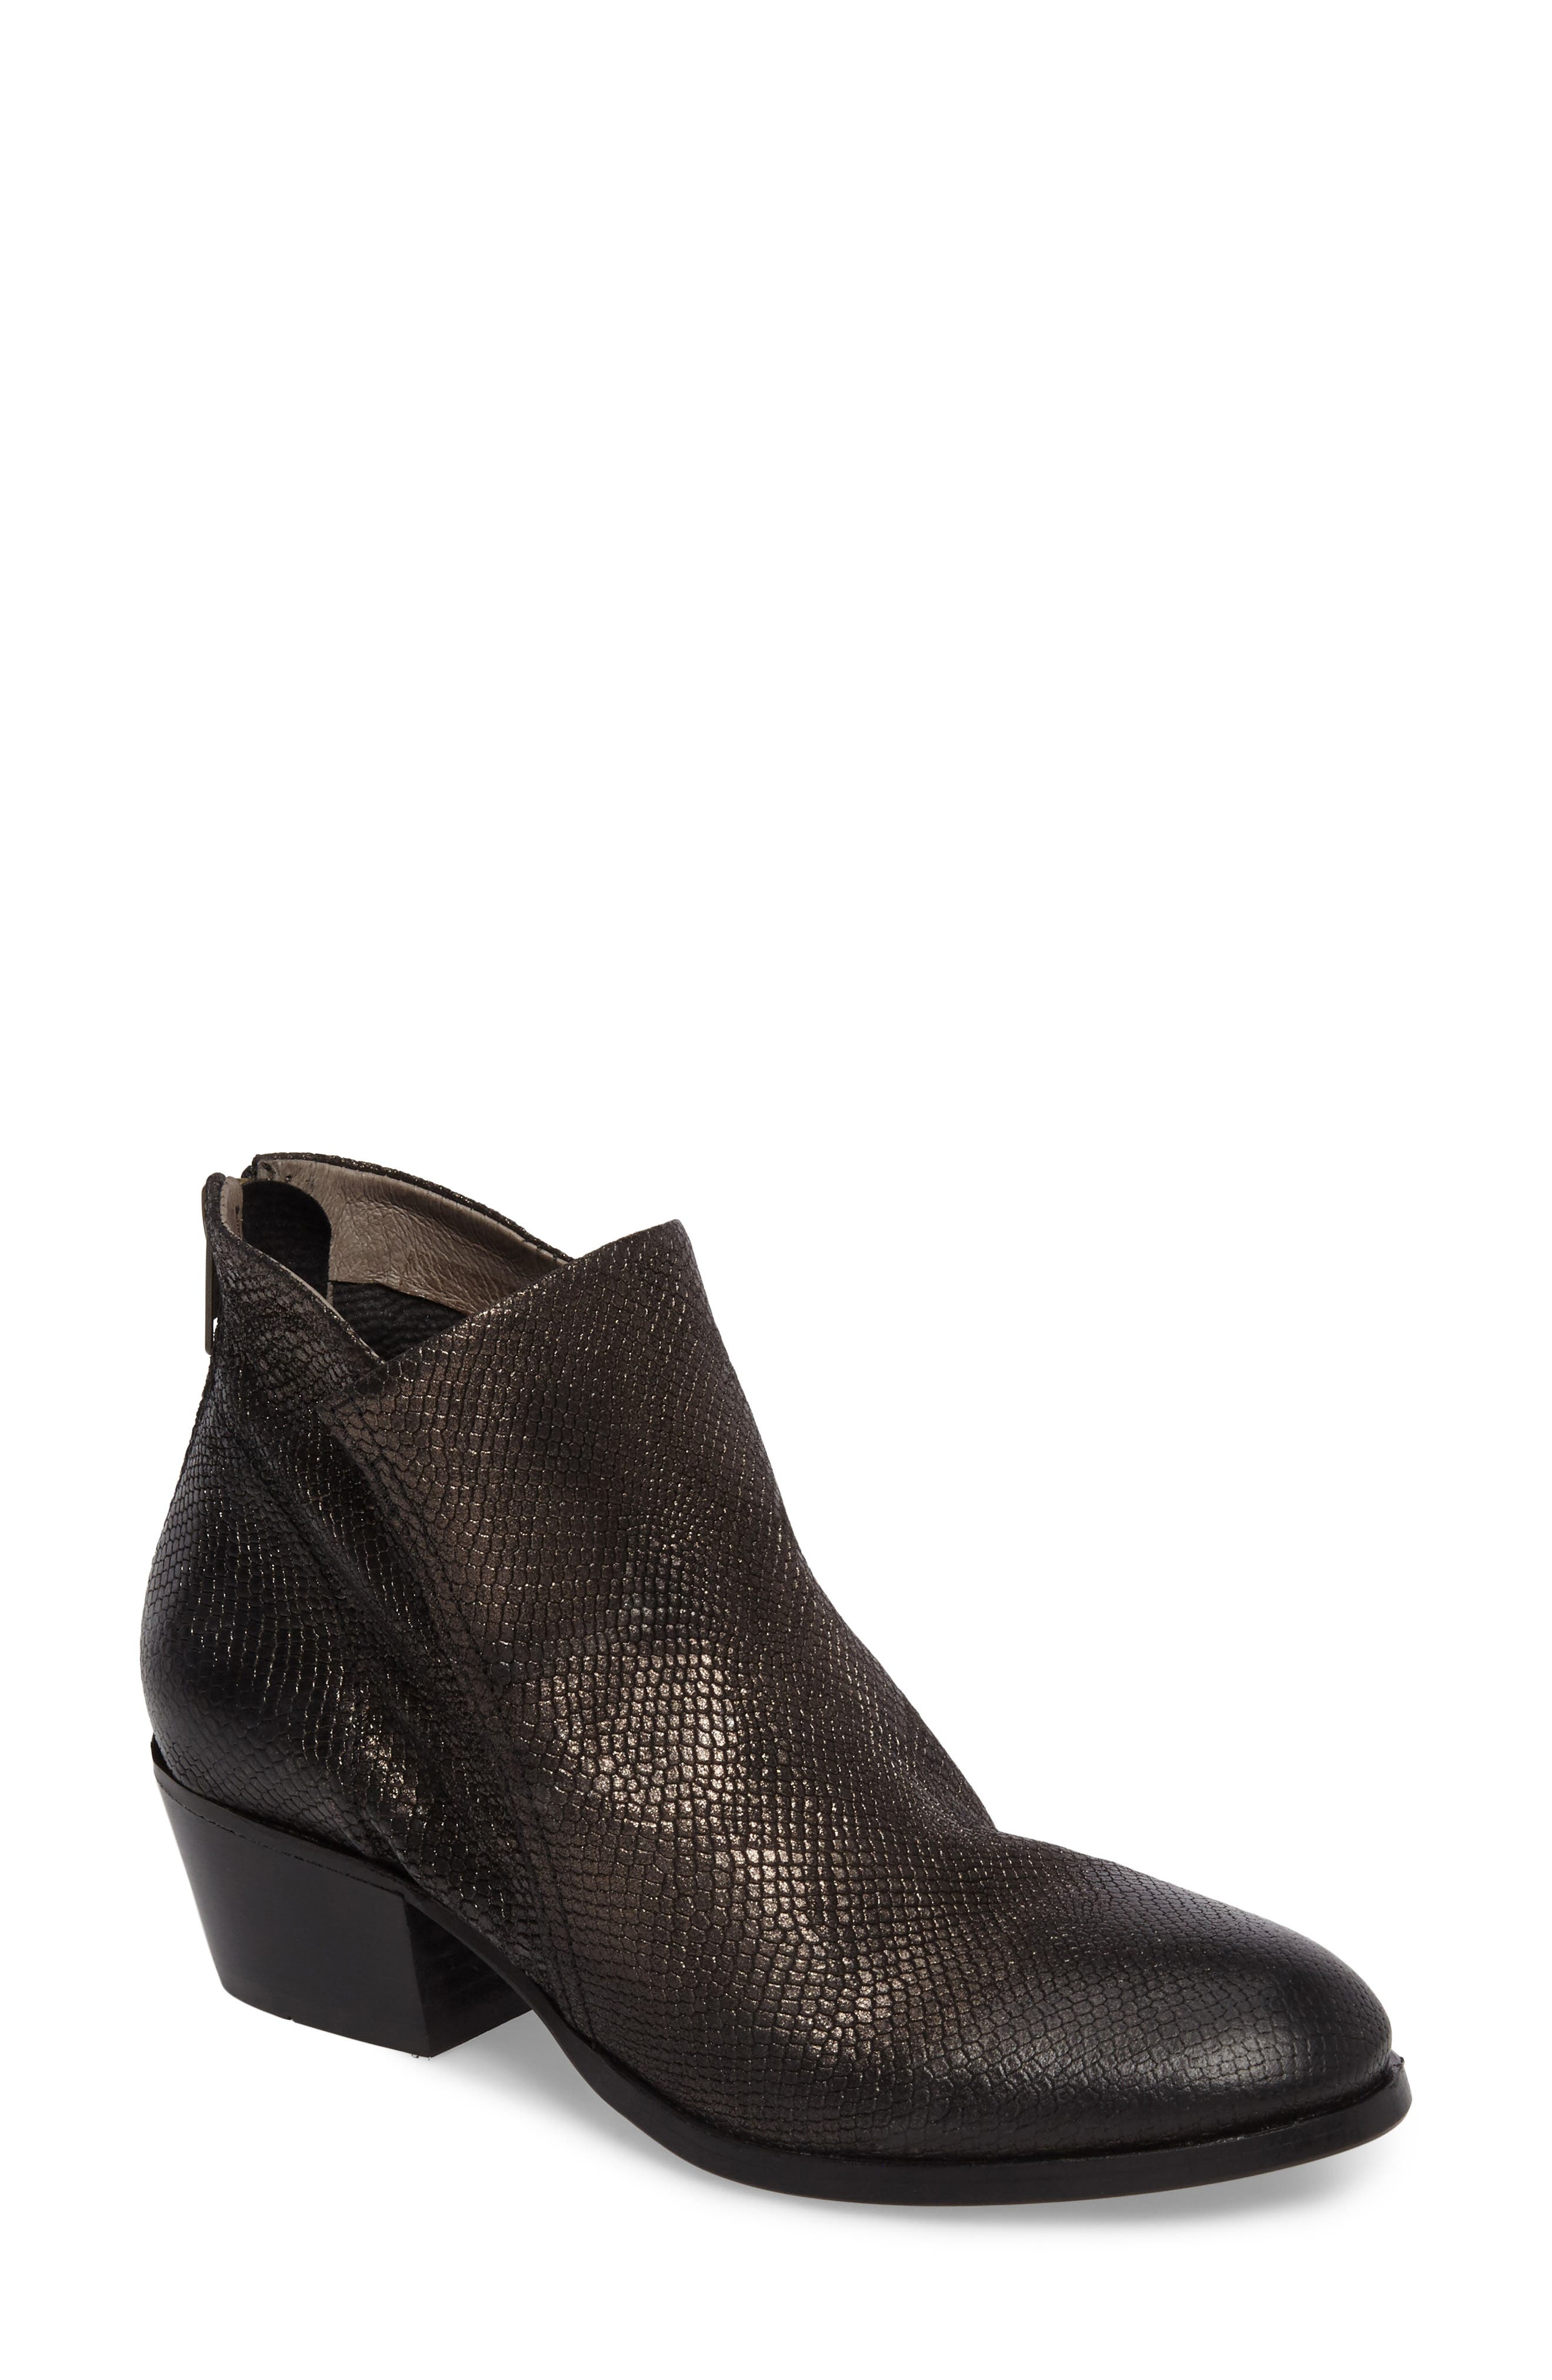 Apisi Bootie,                         Main,                         color, Pewter